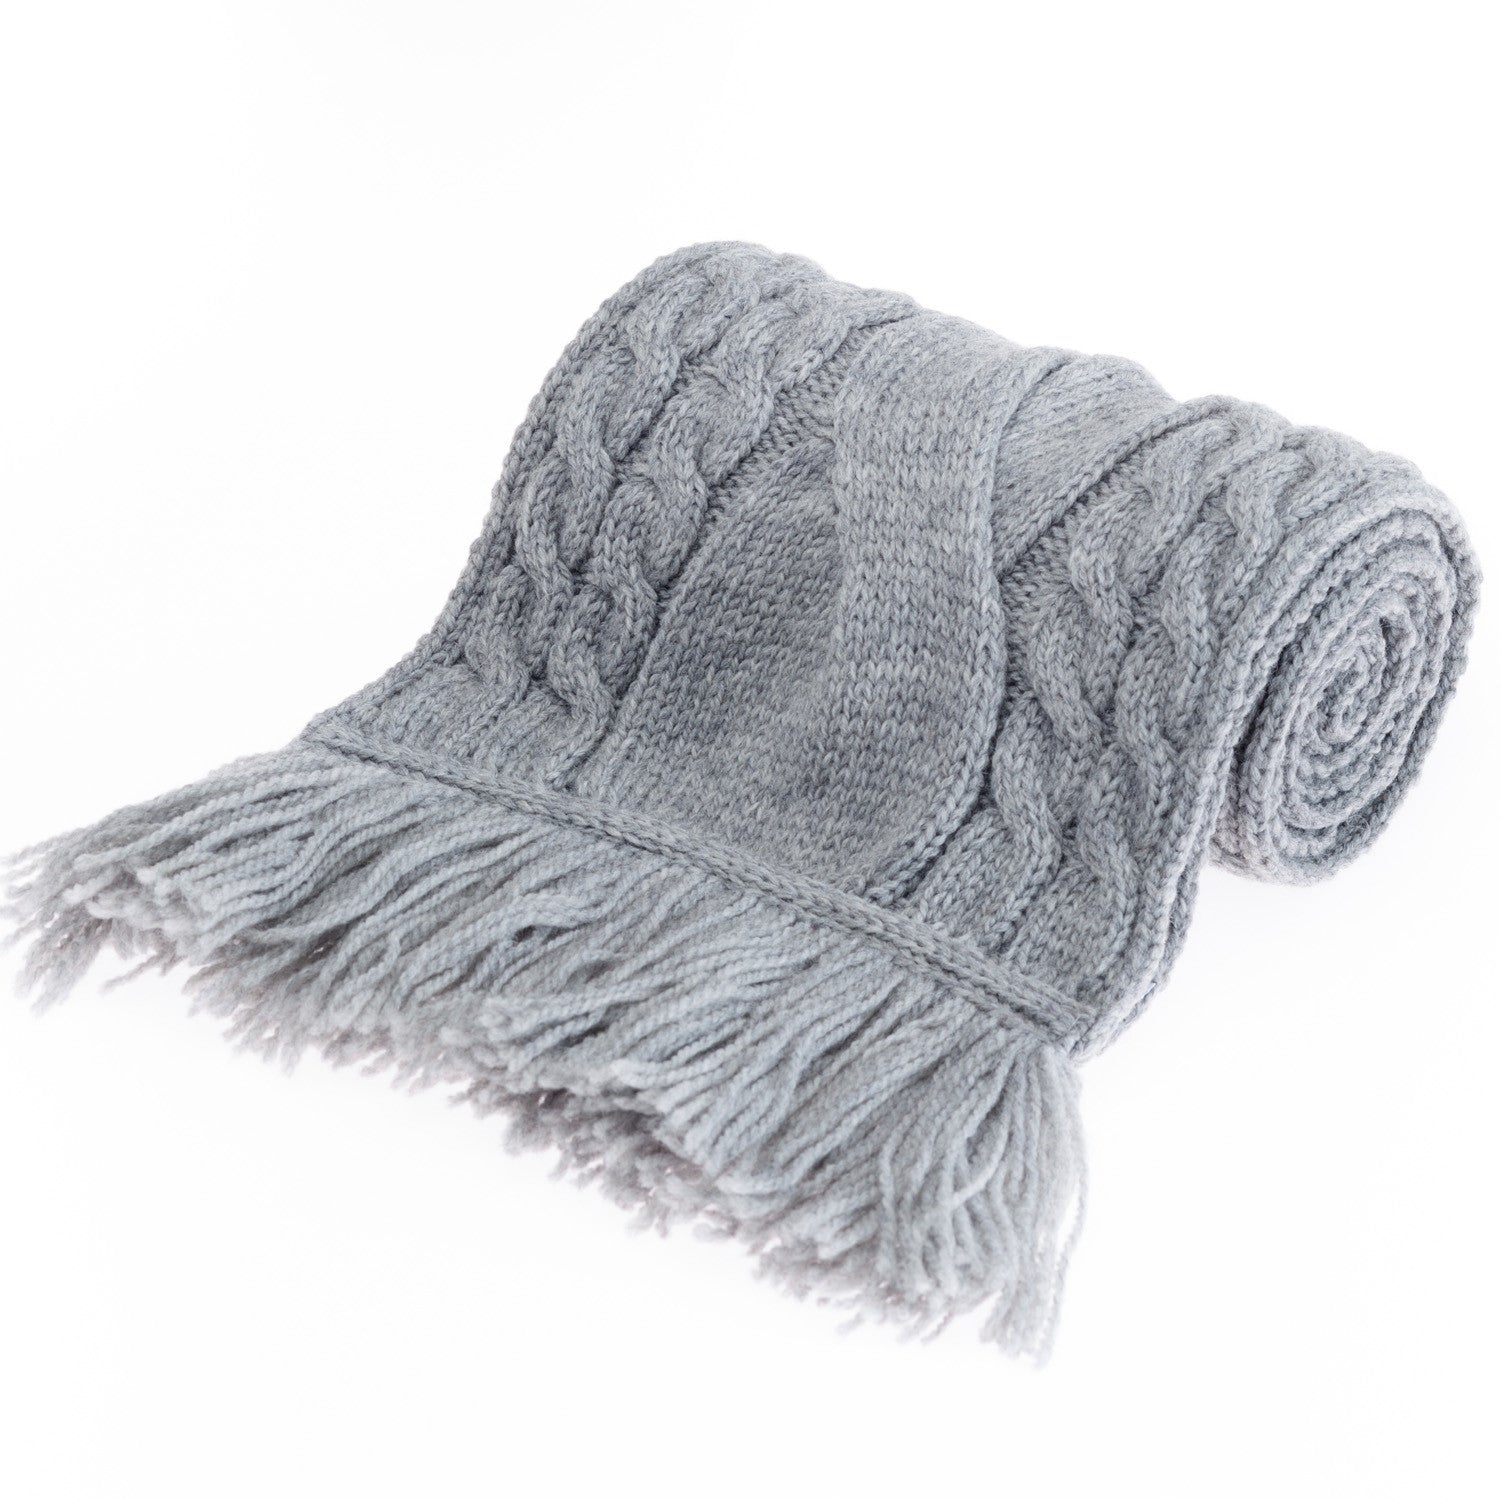 Chunky Cable Merino Wool Scarf with Fringe - Grey